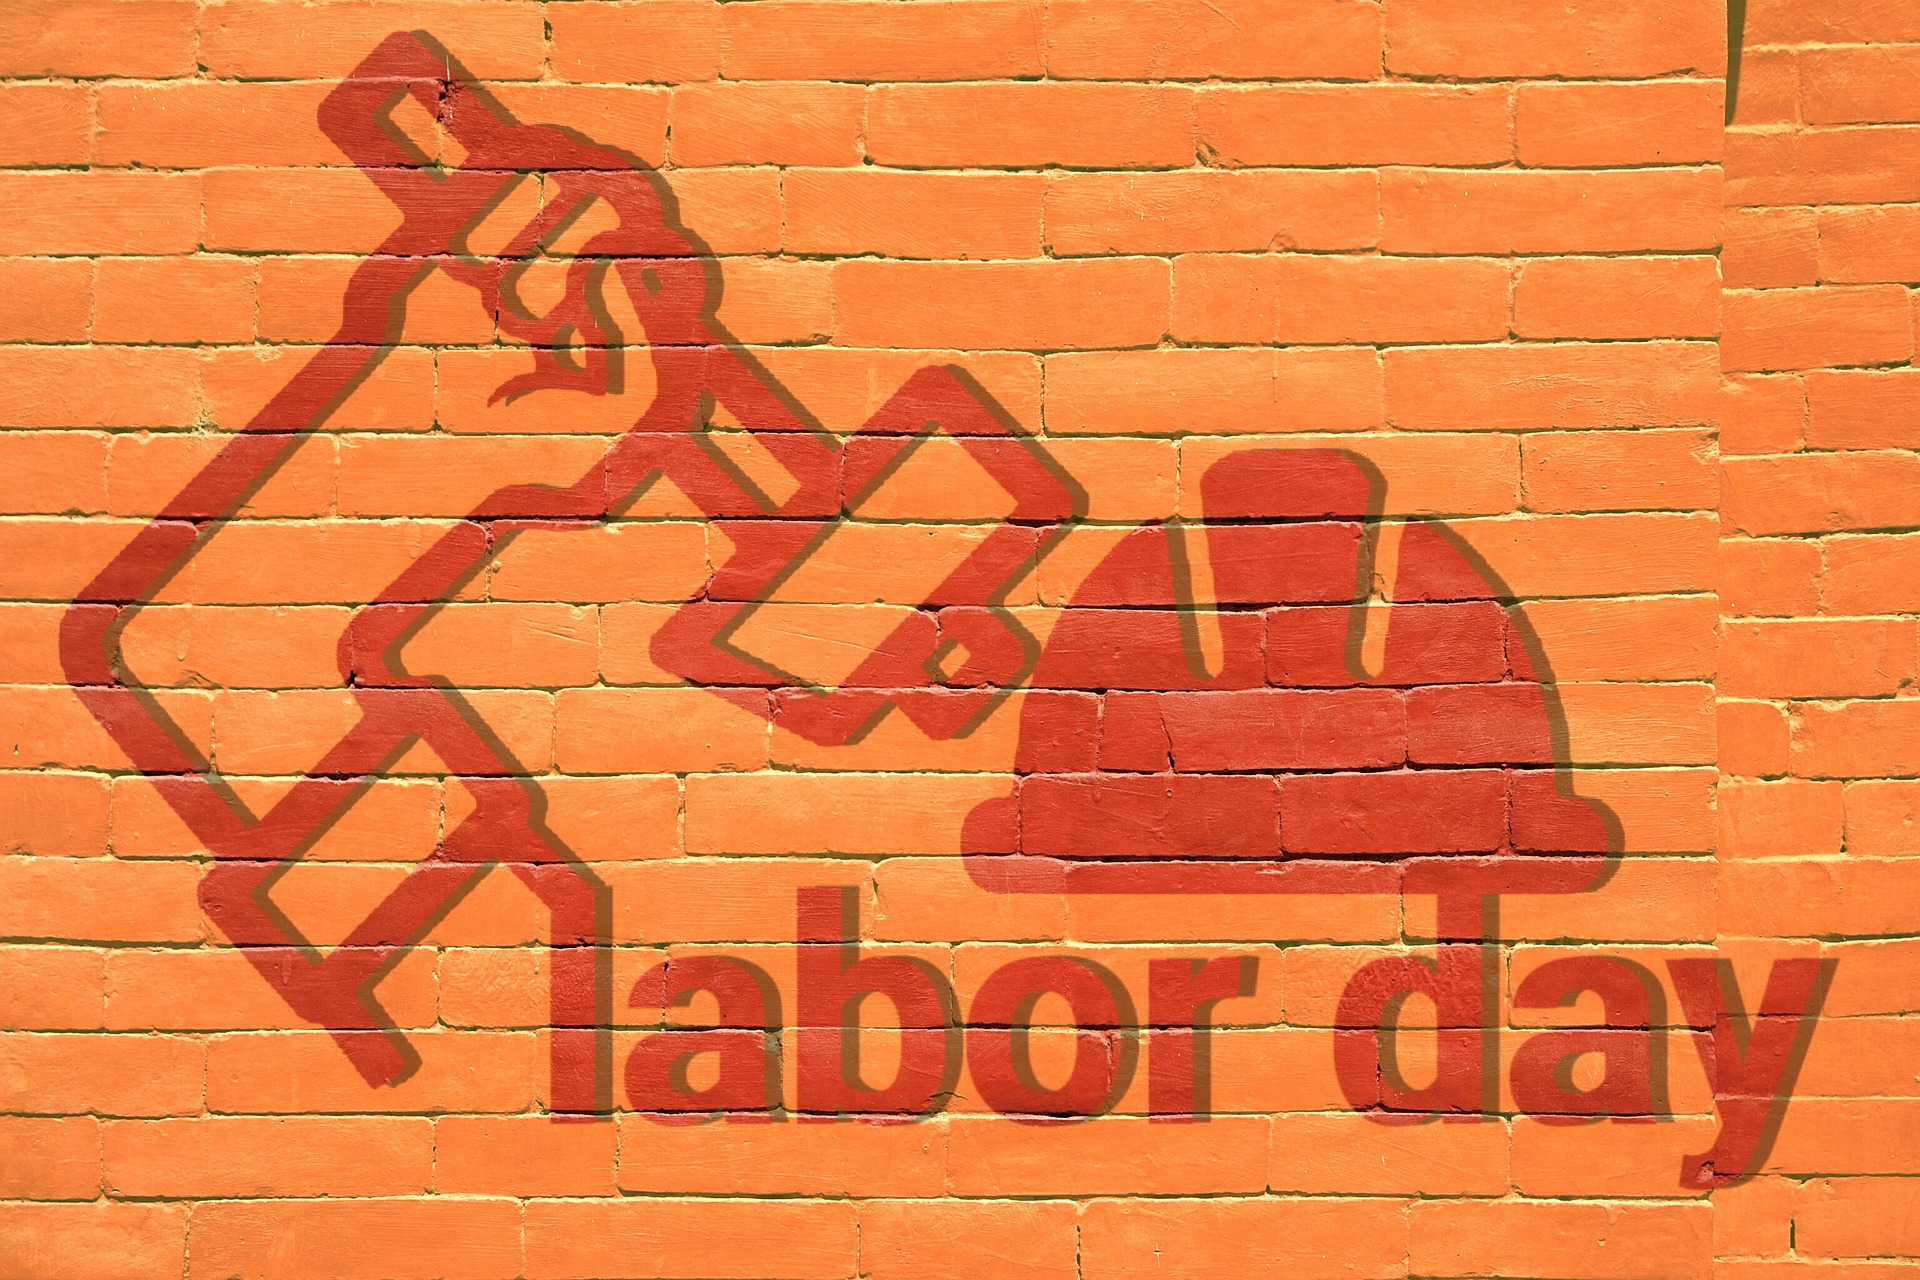 HAPPY LABOR DAY 2021 USA Images